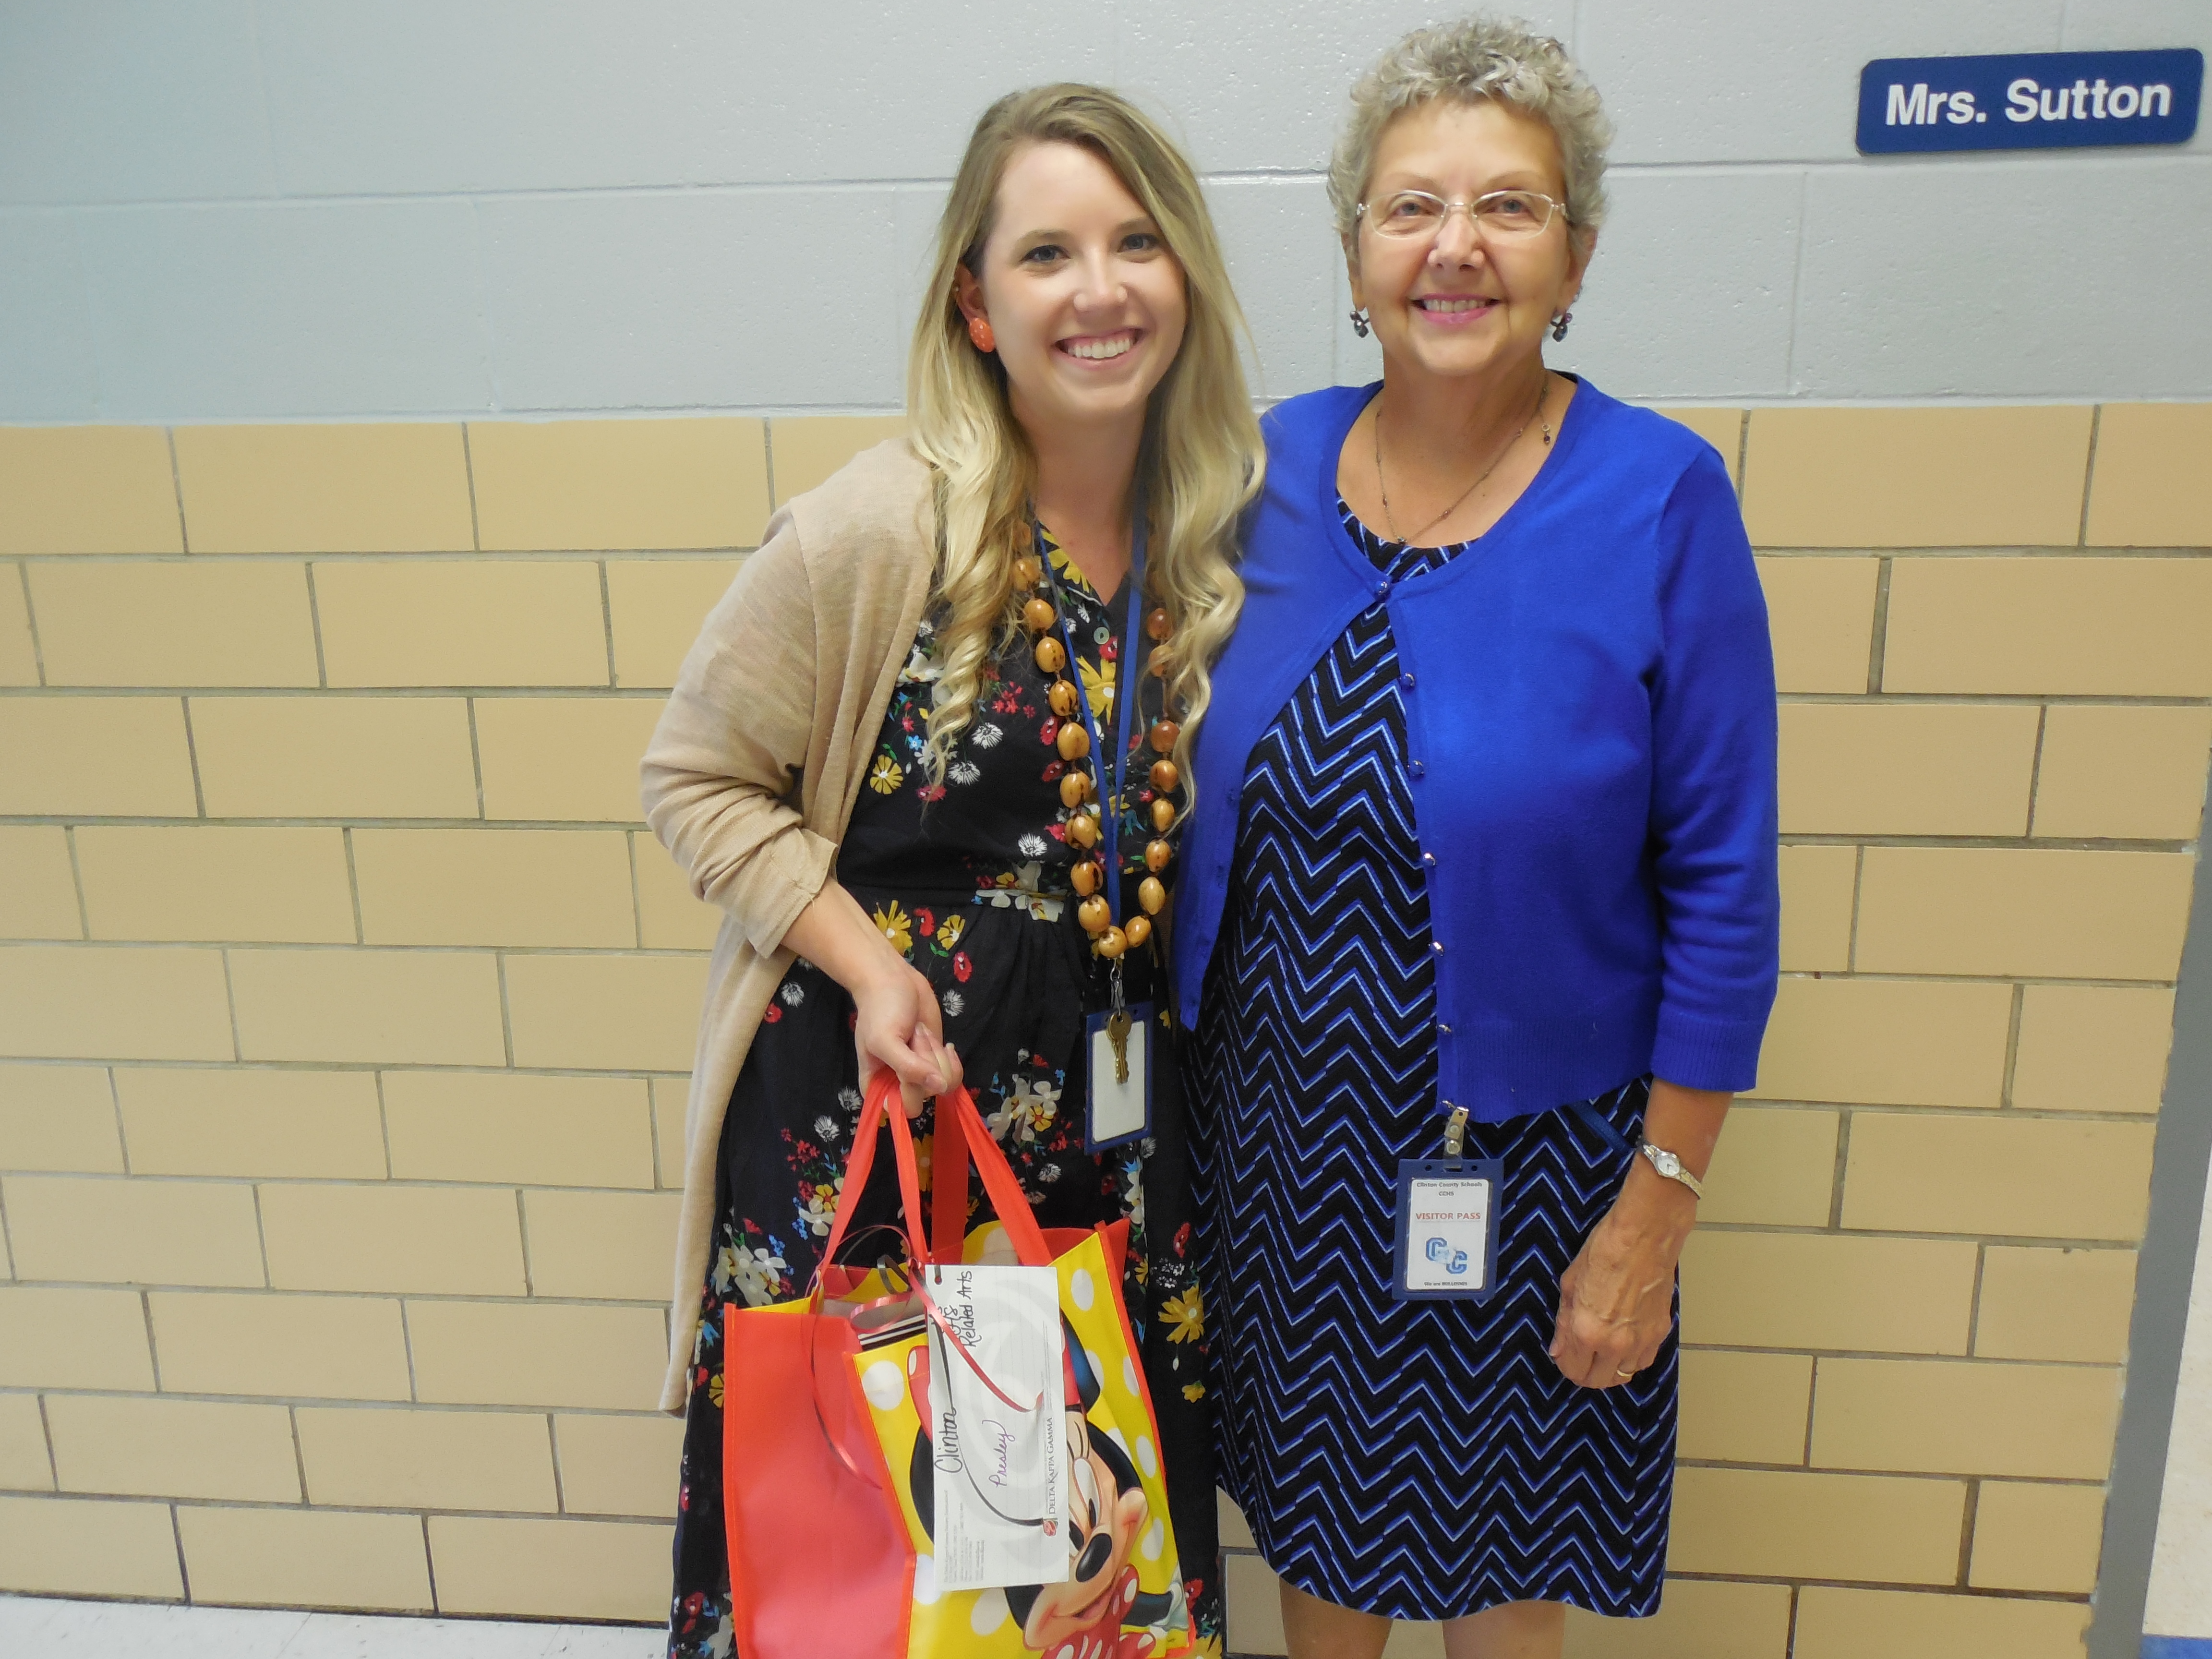 Presley Sutton, art teacher at CCMS & CCHS, receives her gift from Mrs. Stearns.